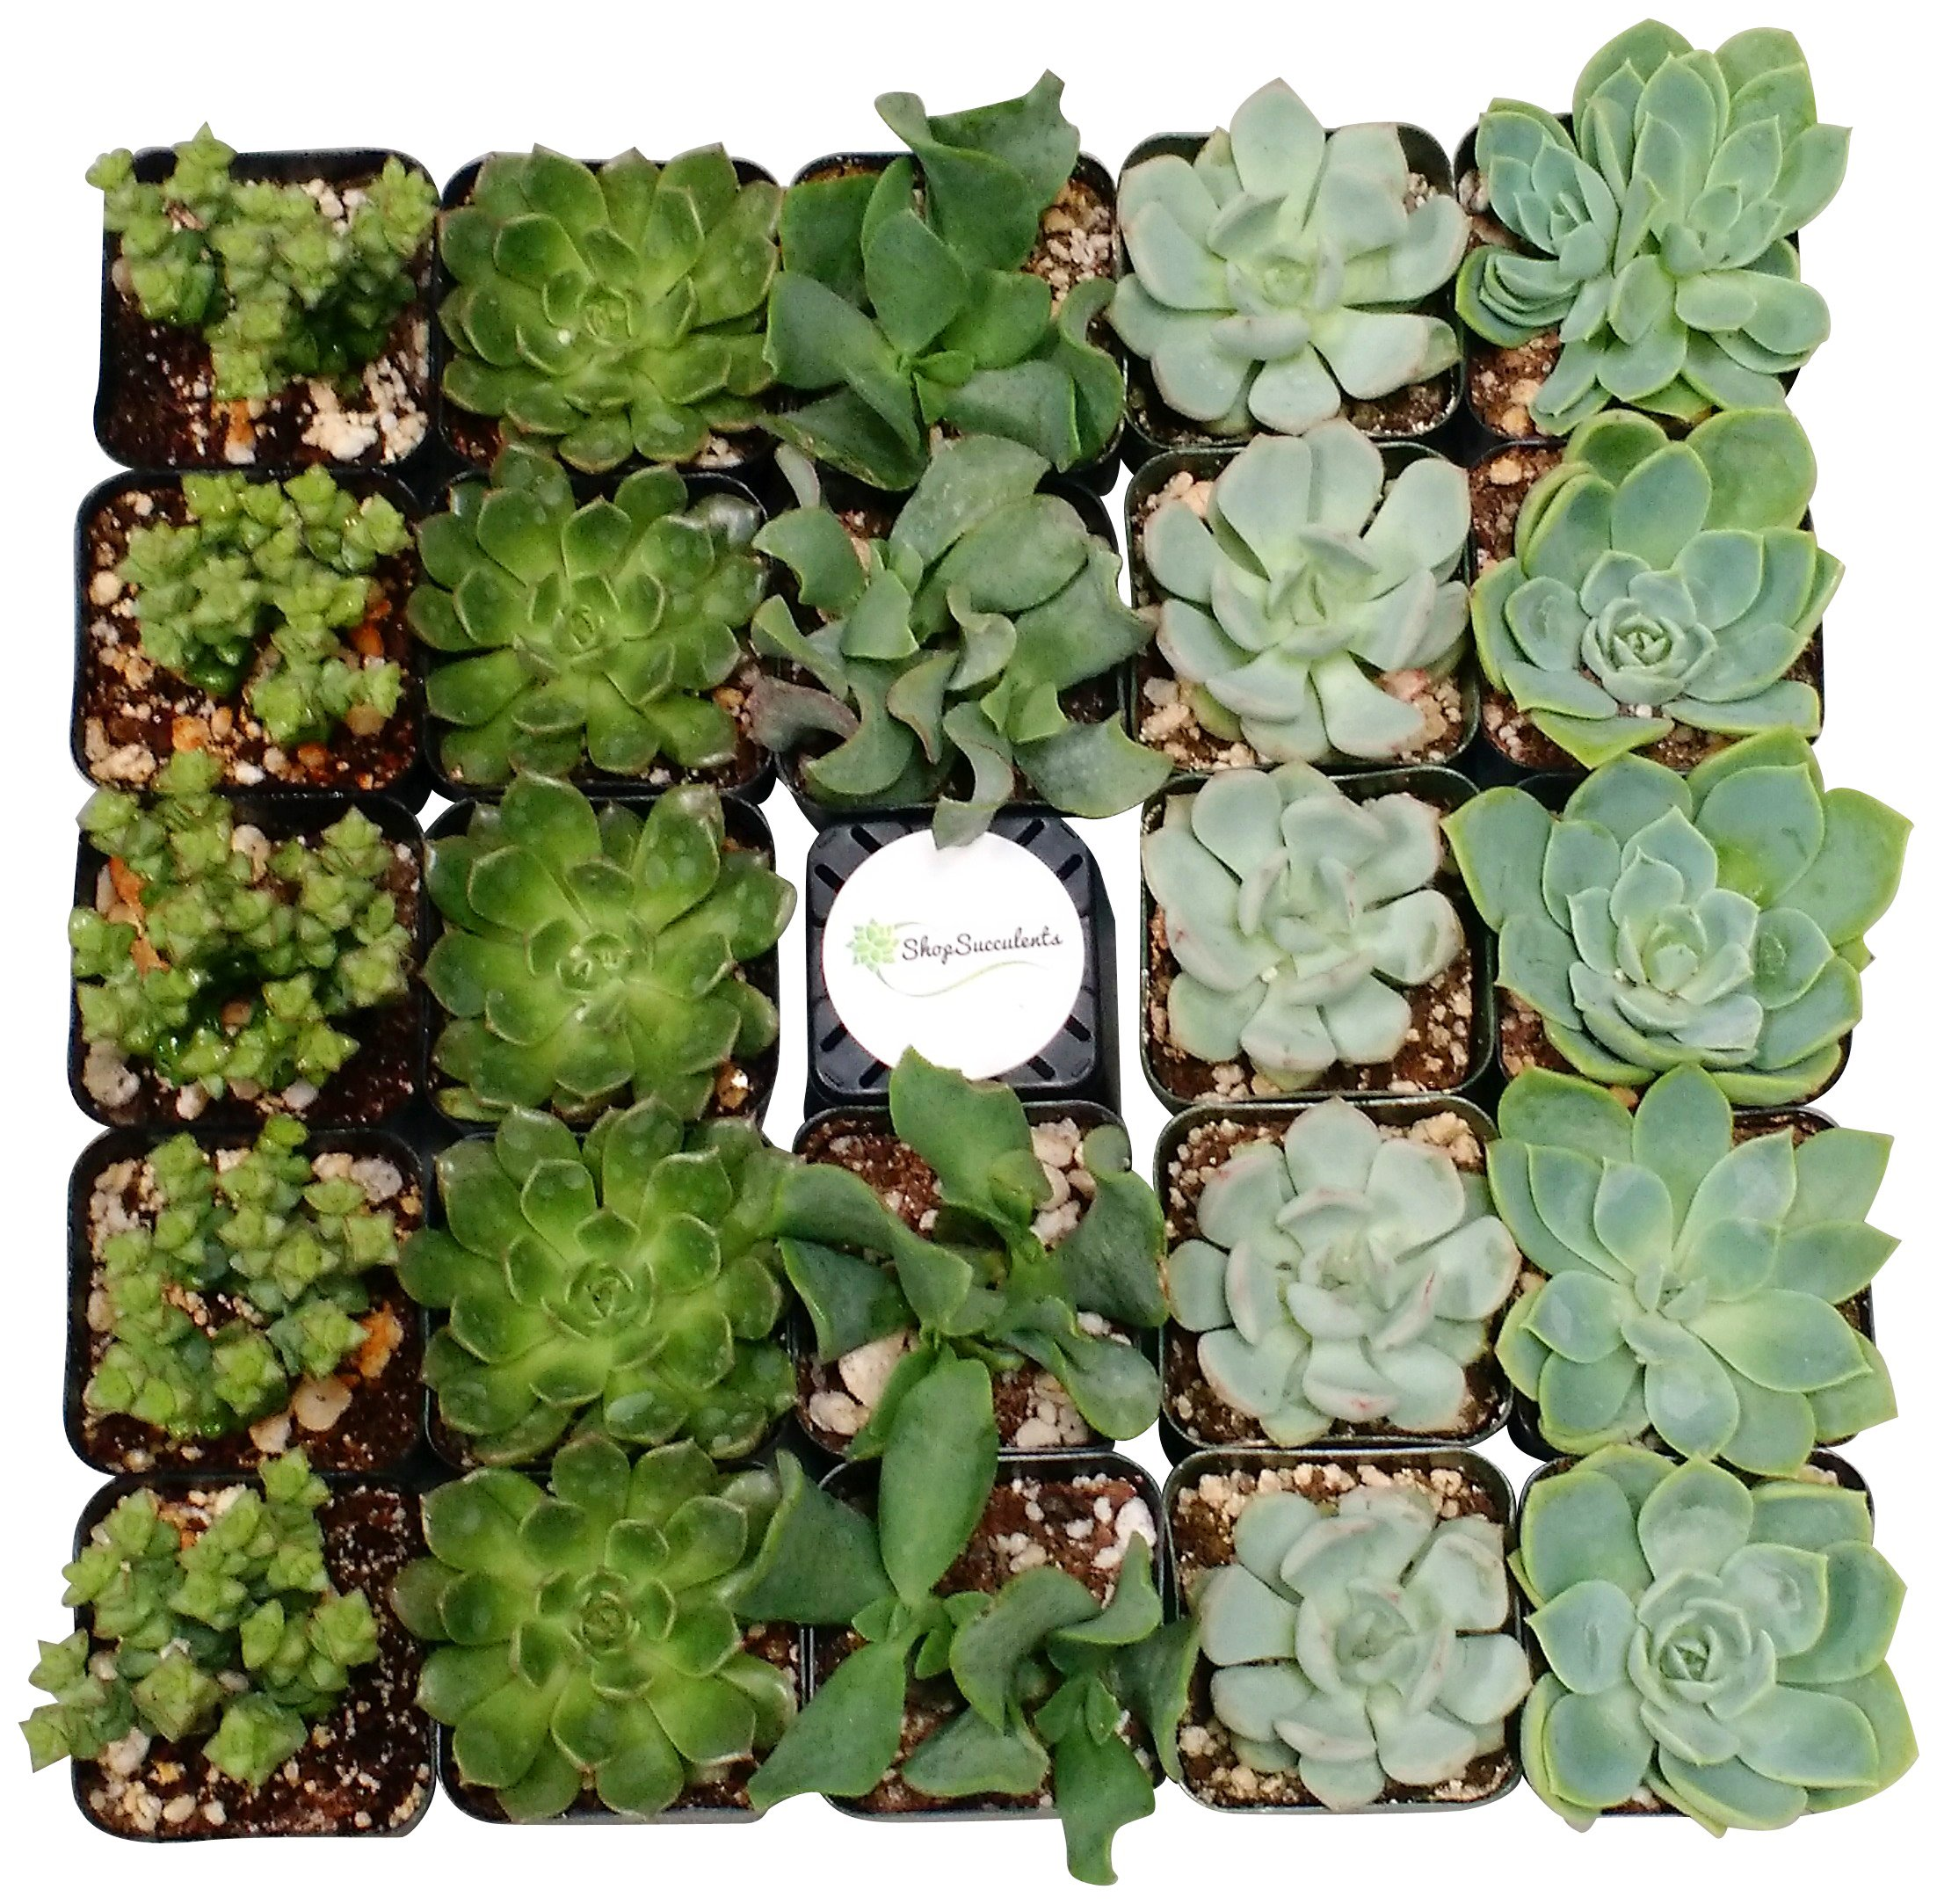 Shop Succulents Green Succulent (Collection of 140)